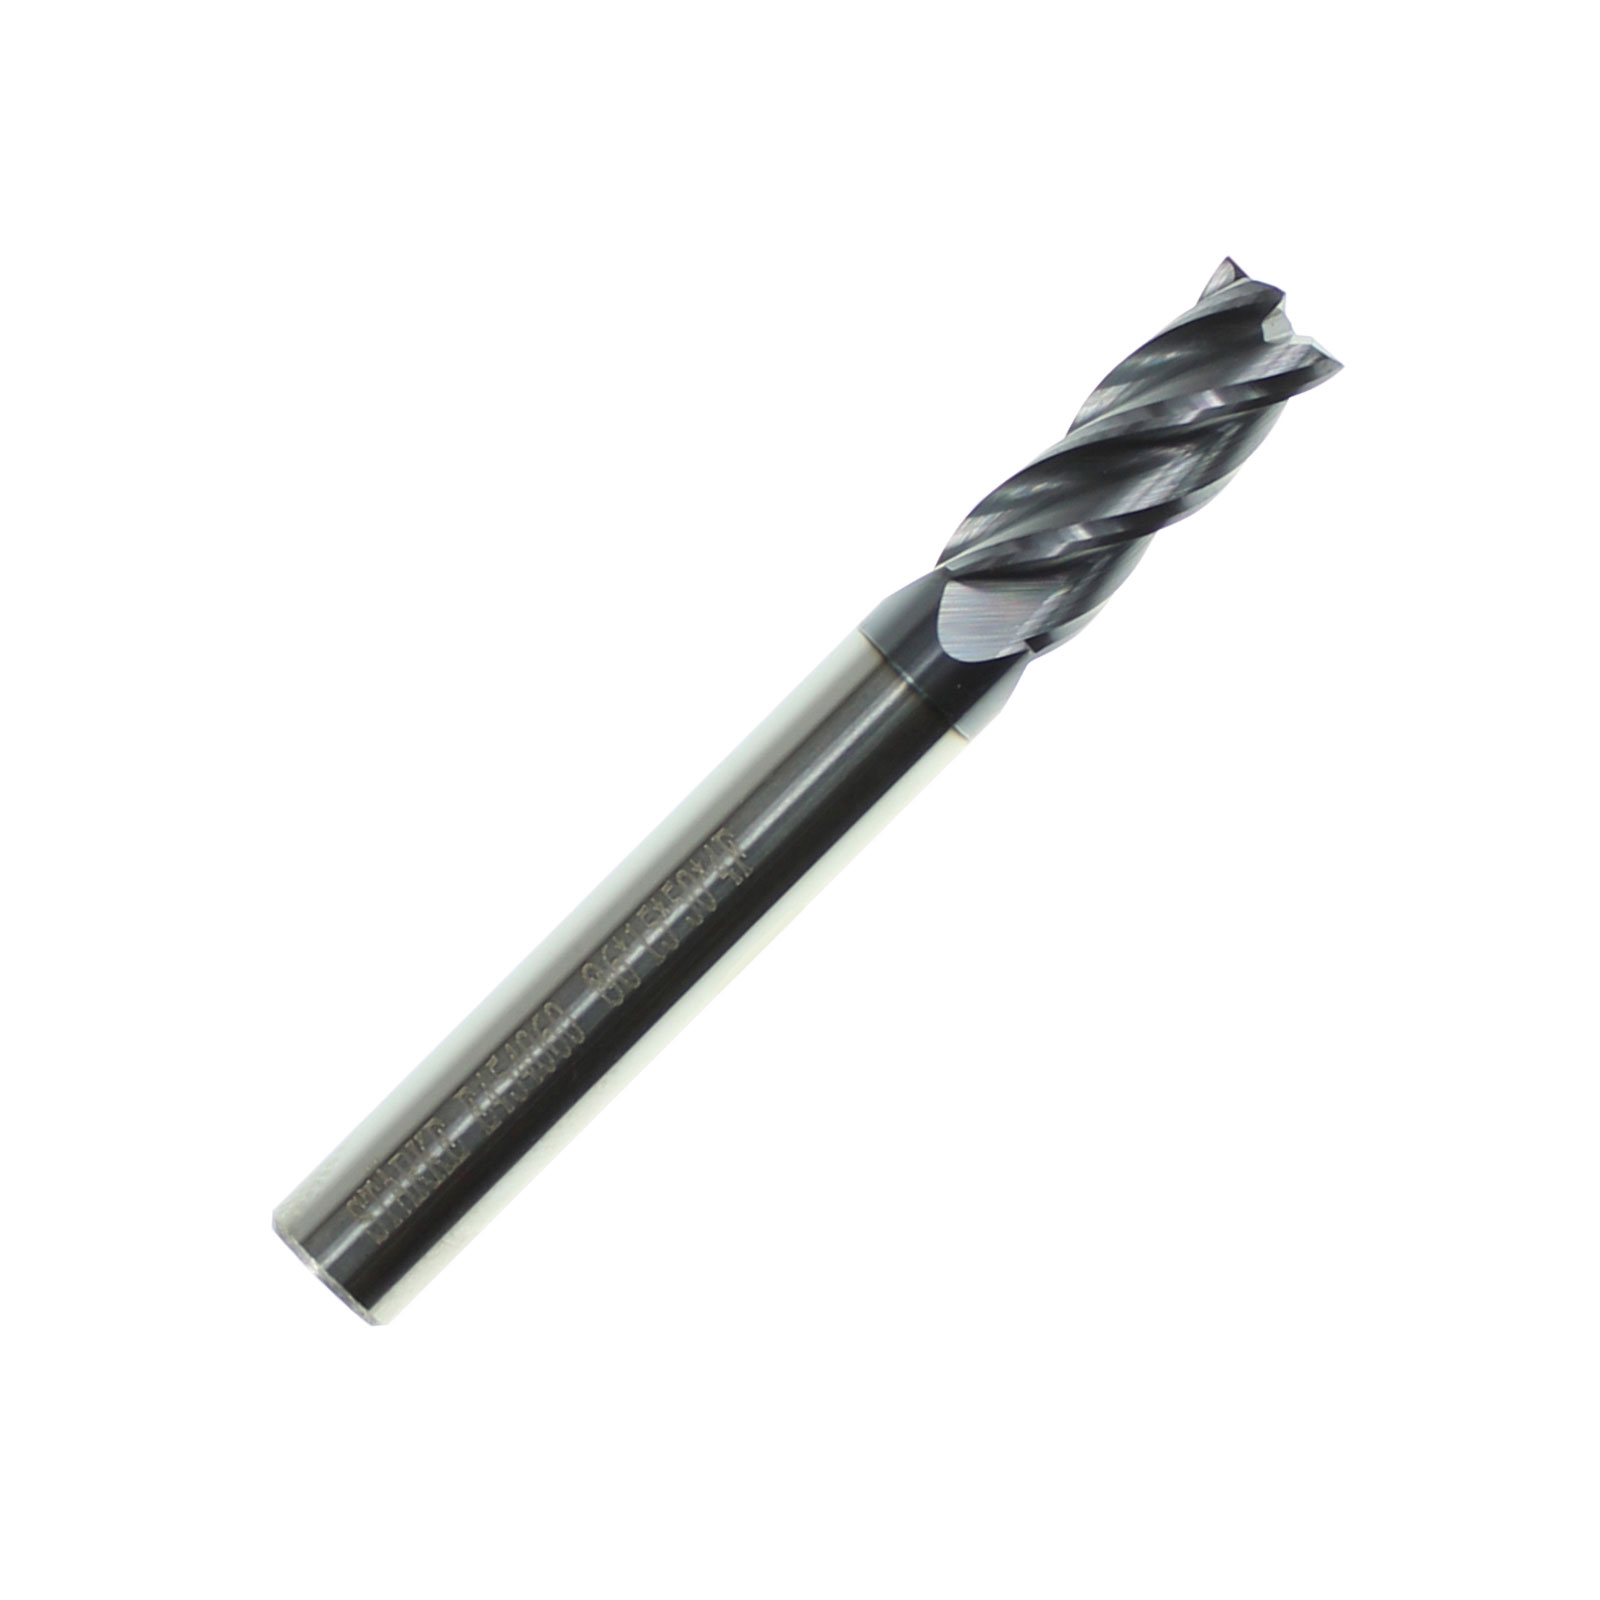 STARKE Eco-Mill Coated Carbide 4 Flute End Mill.